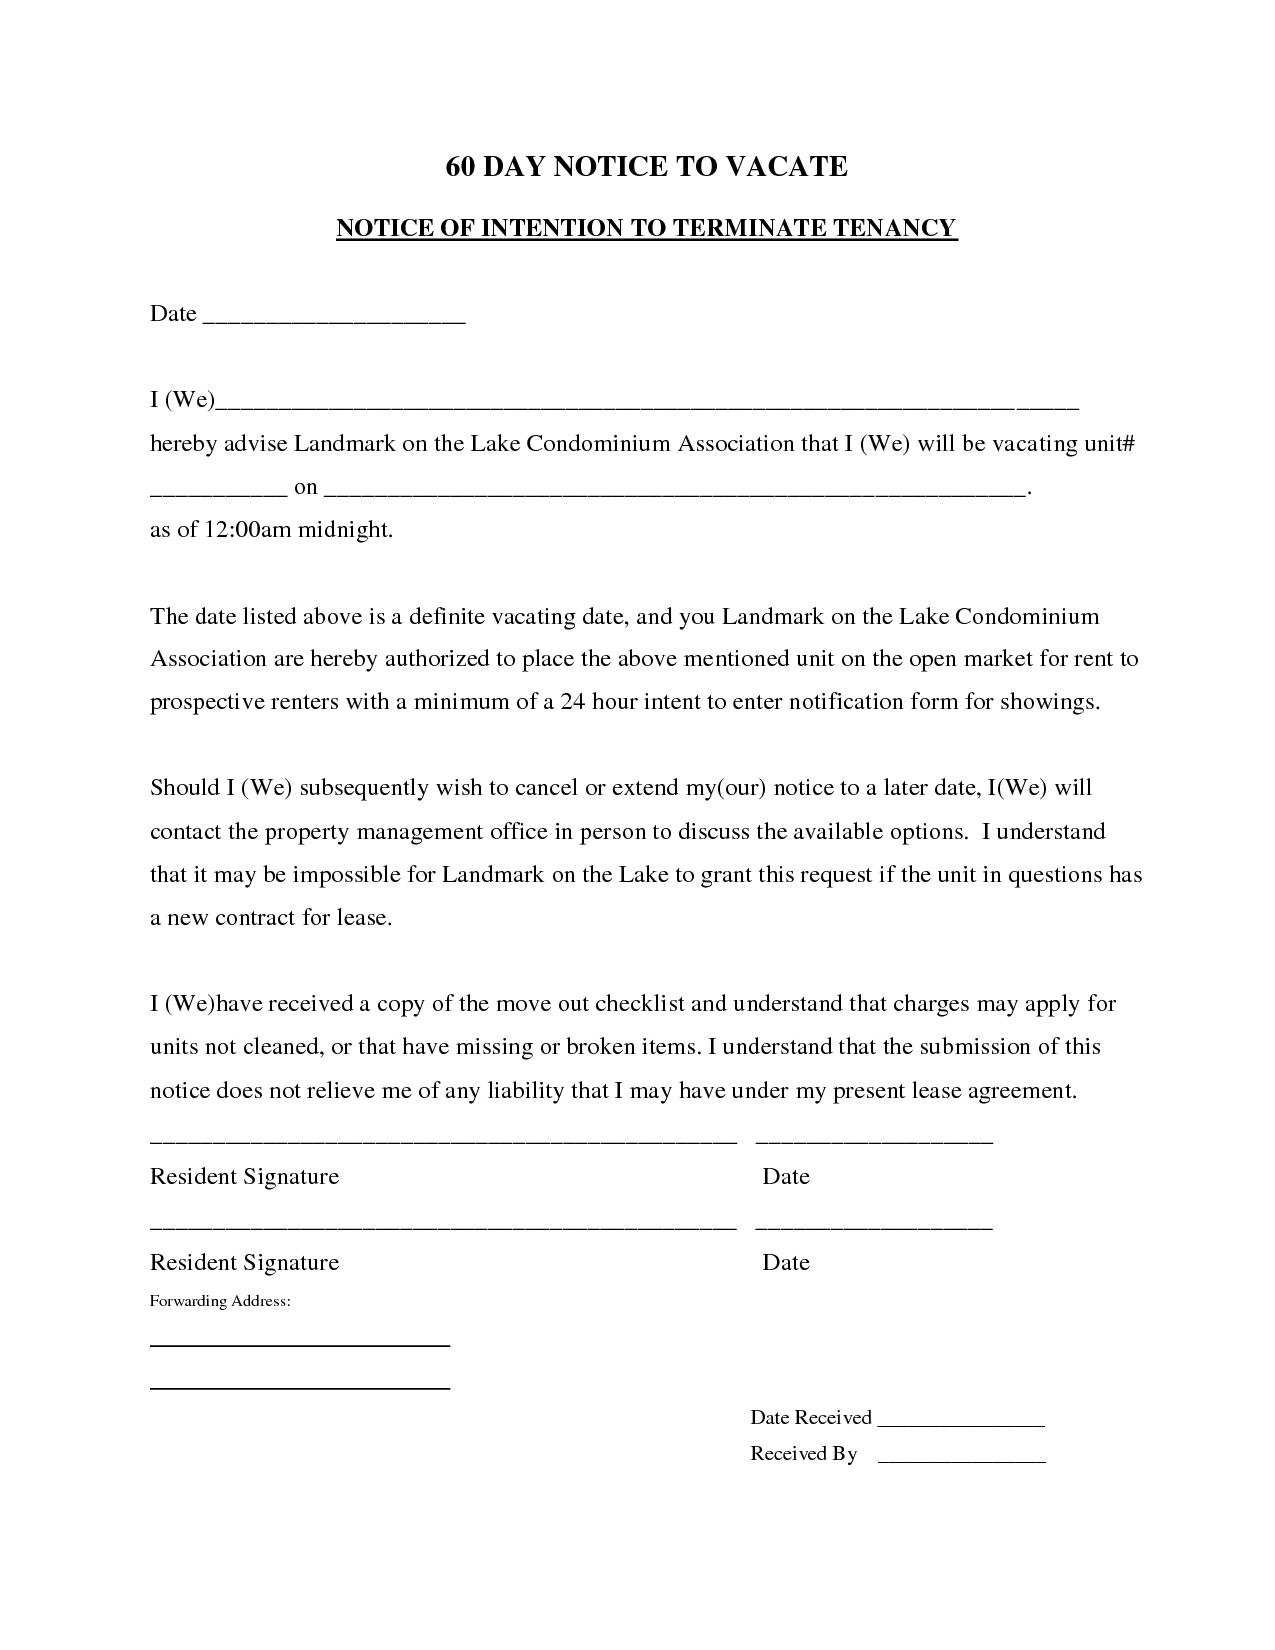 60 Day Vacate Notice Template